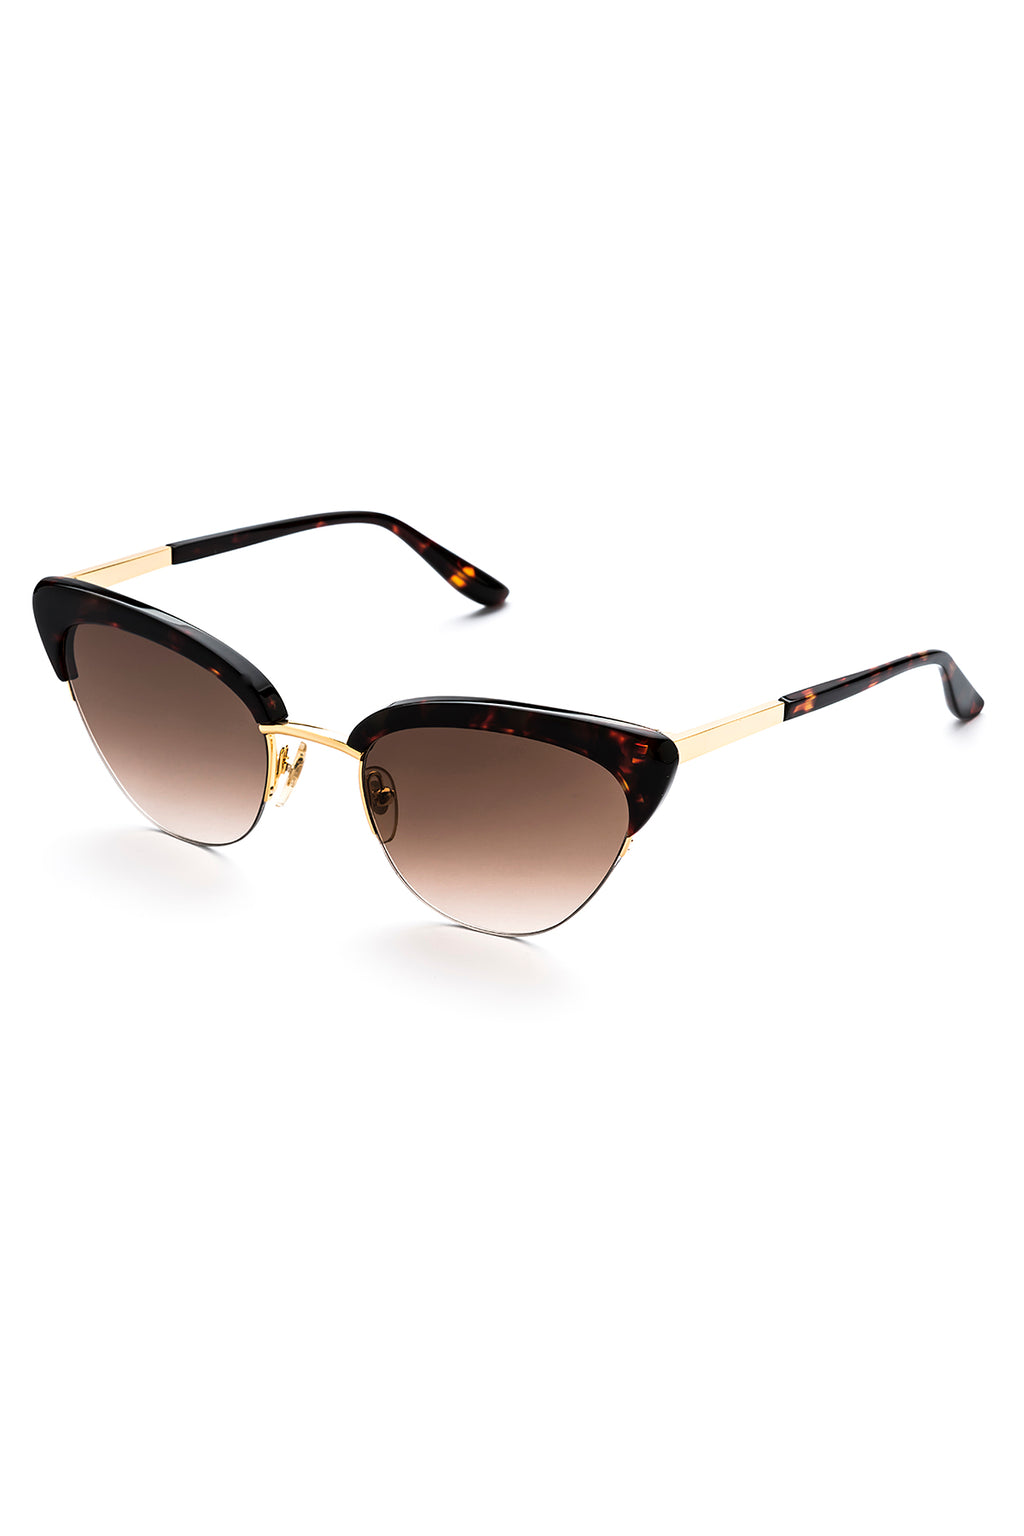 PIXIE Sunglasses, Dark Chocolate Tortoishell